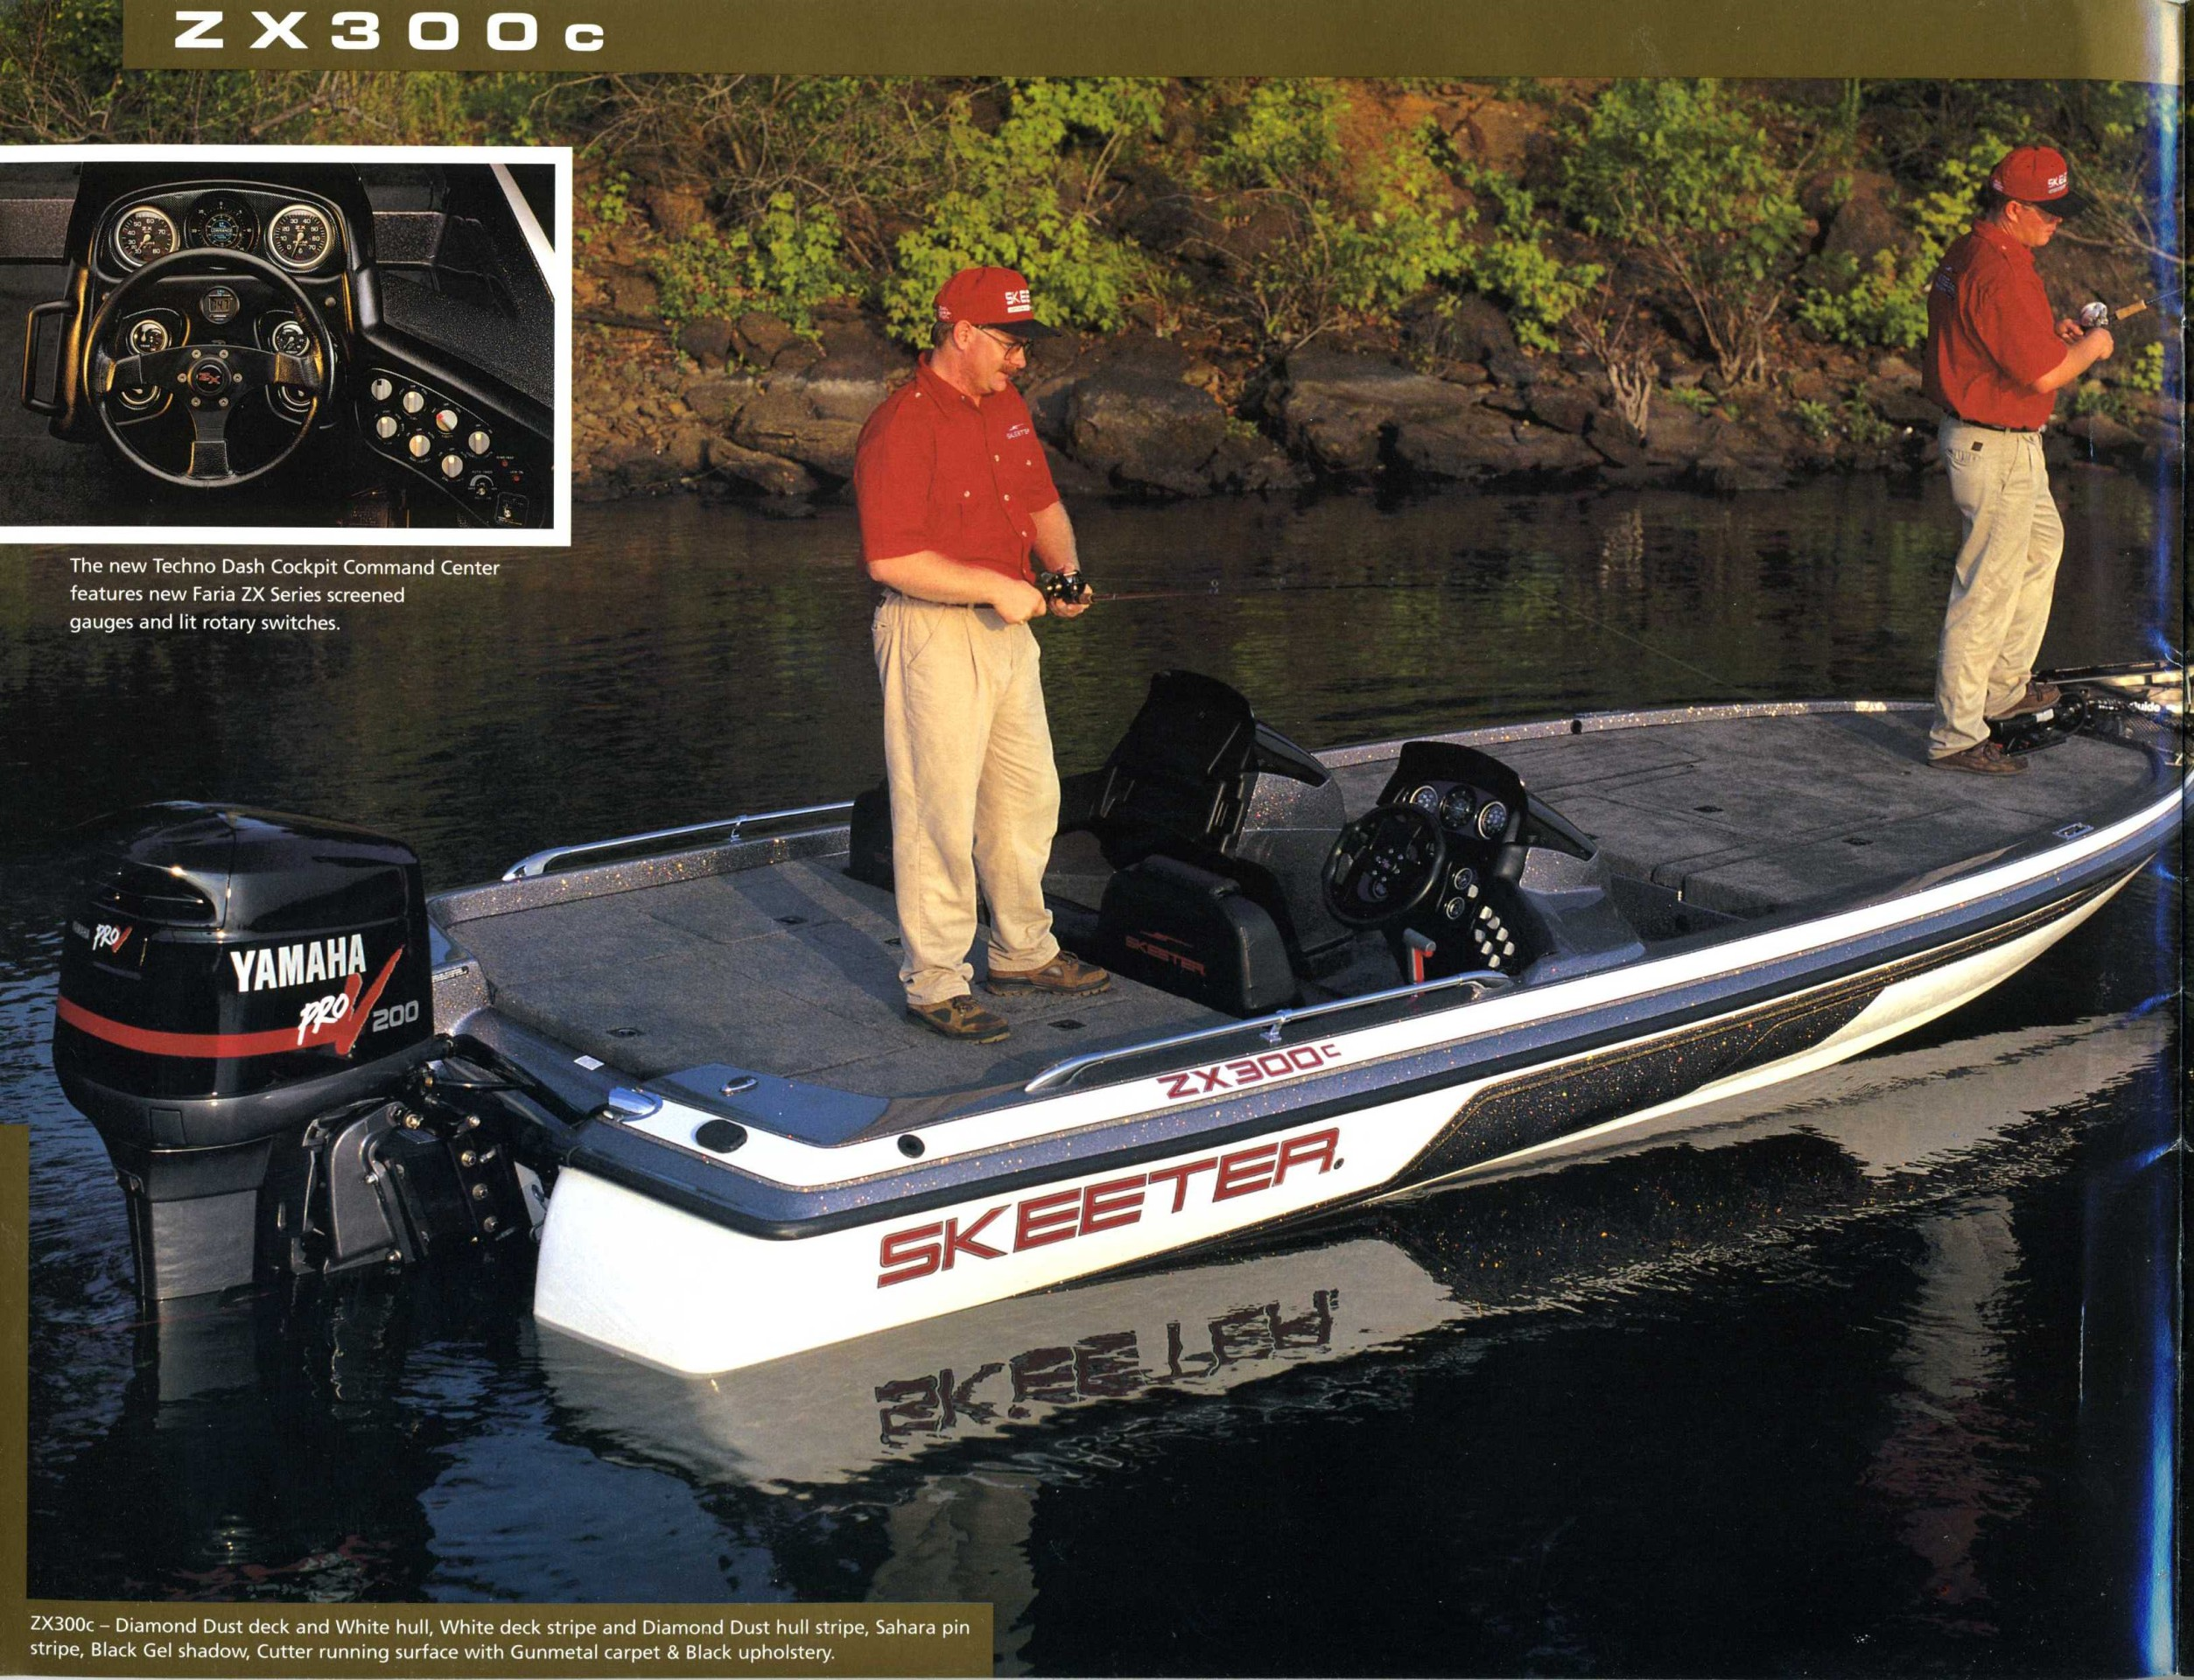 New Fishing Products in 1997: